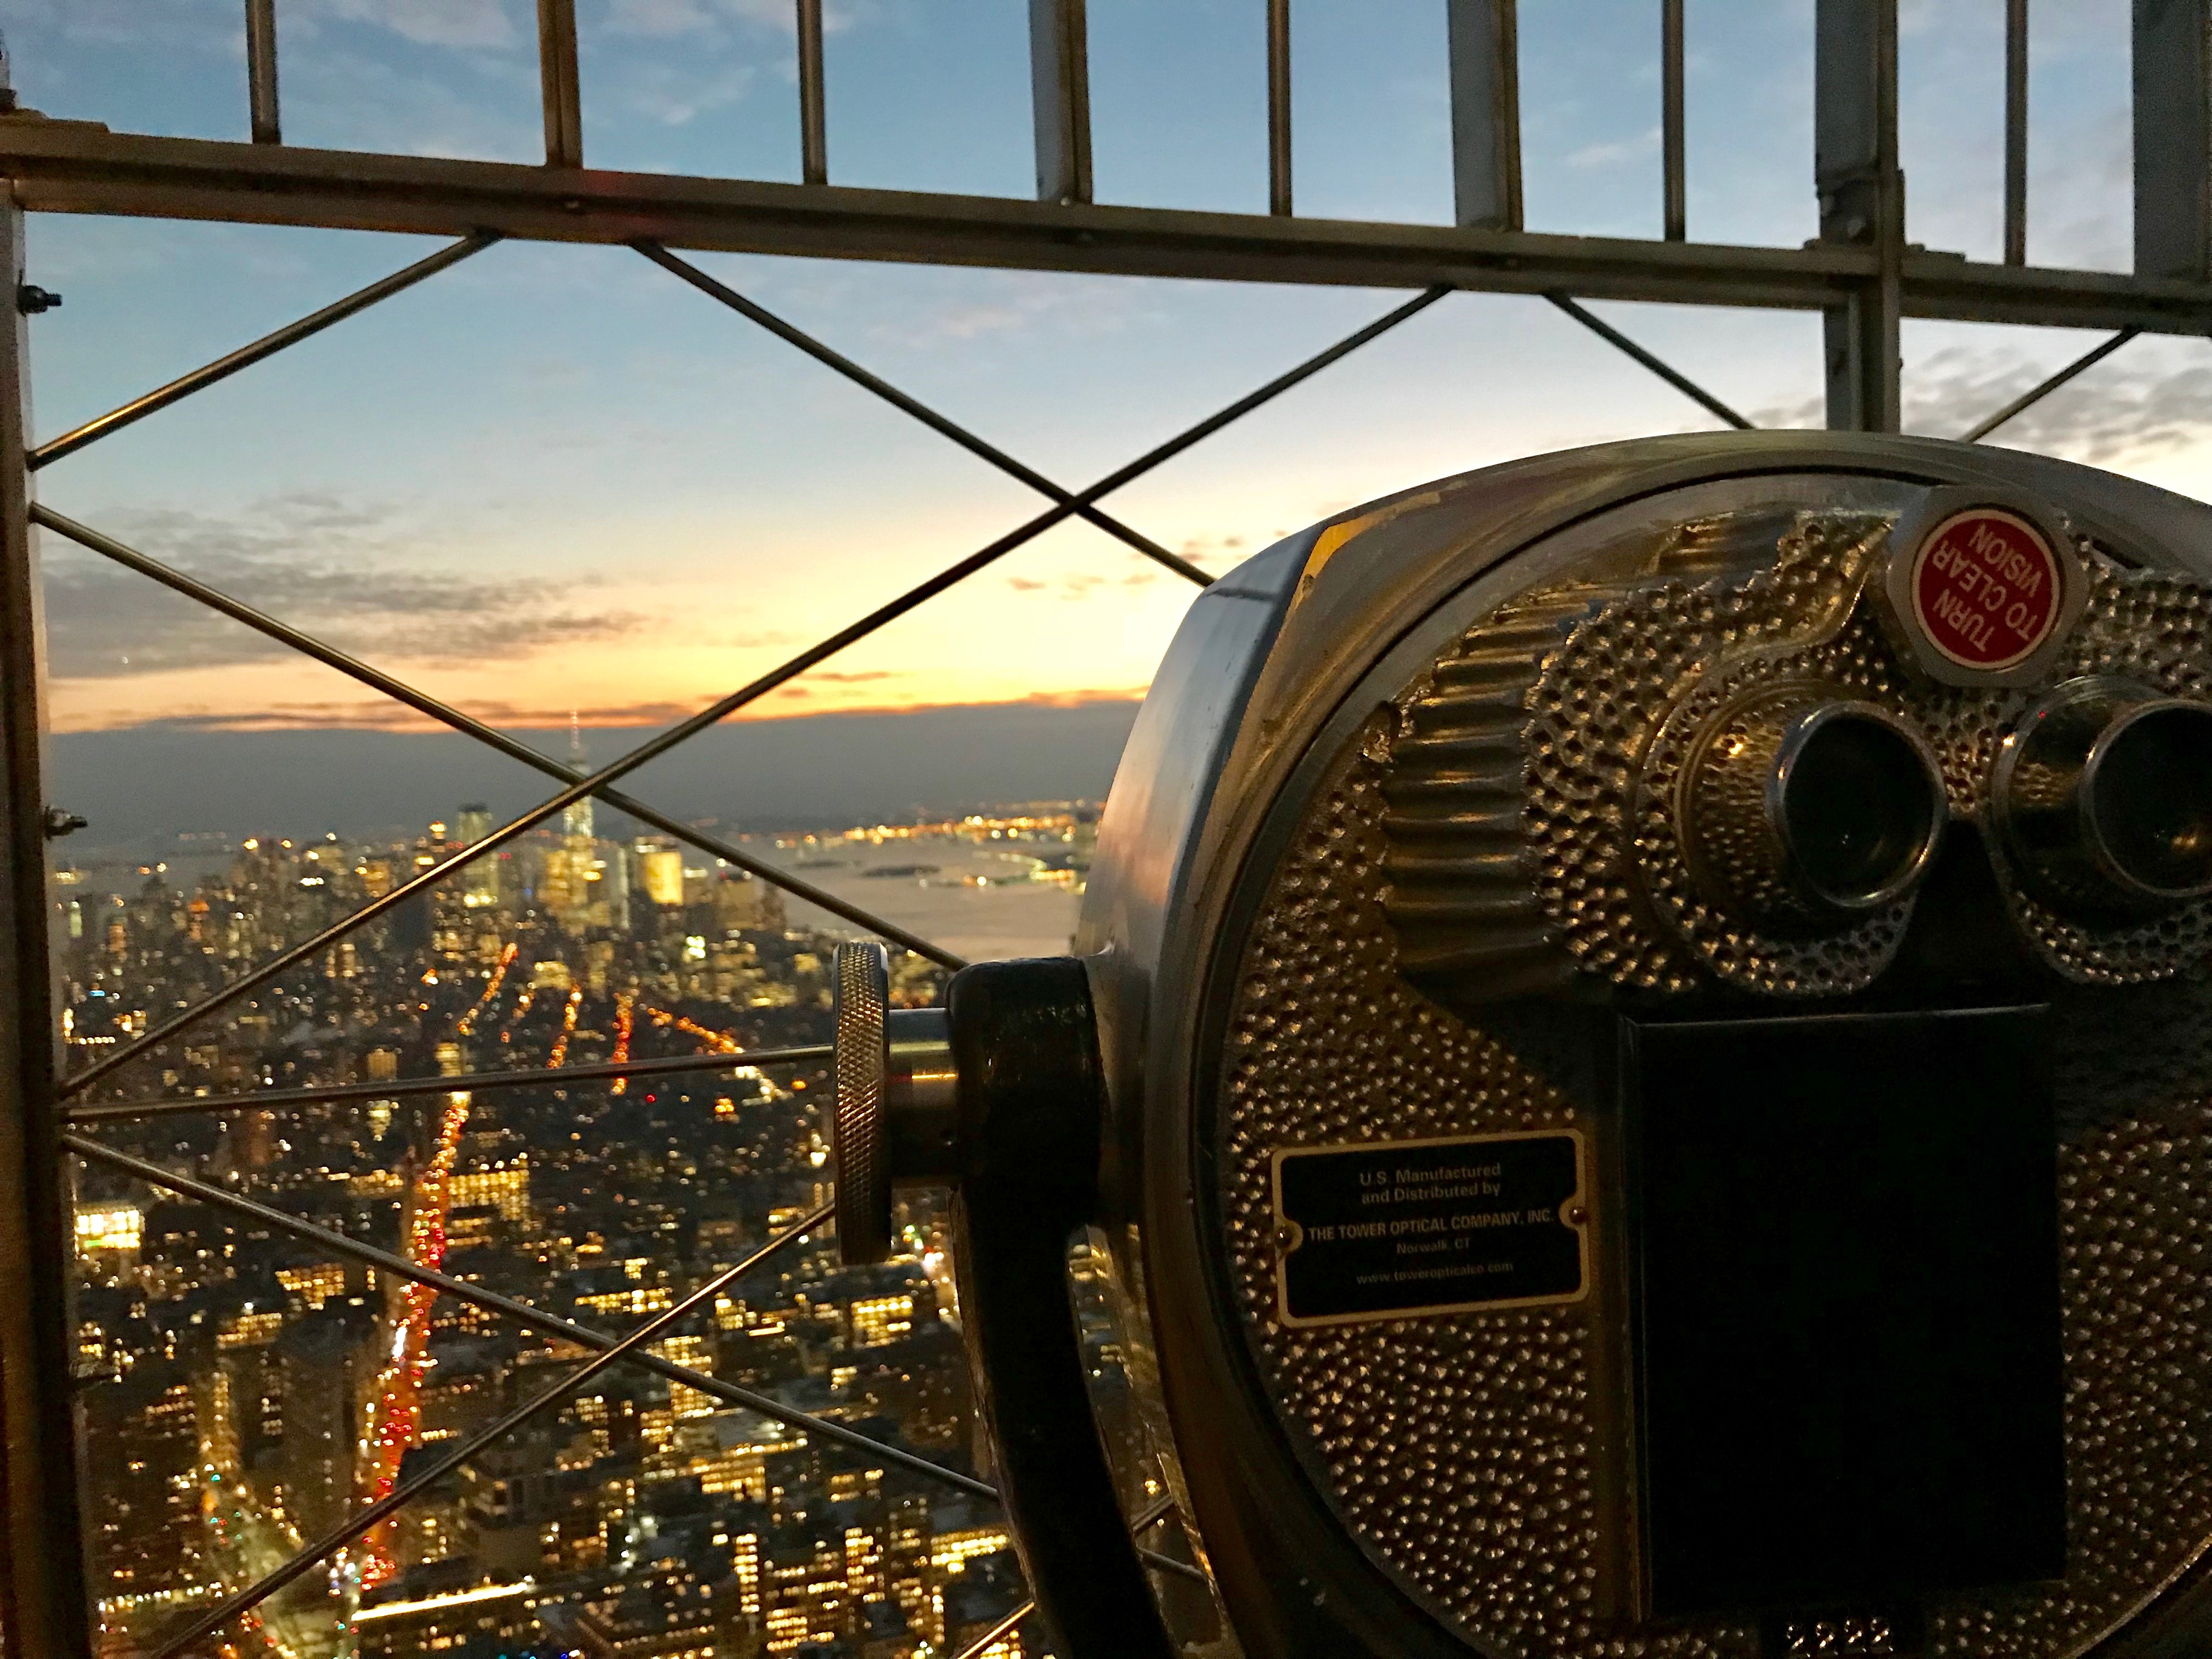 Empire State Building Observatation Deck NYC